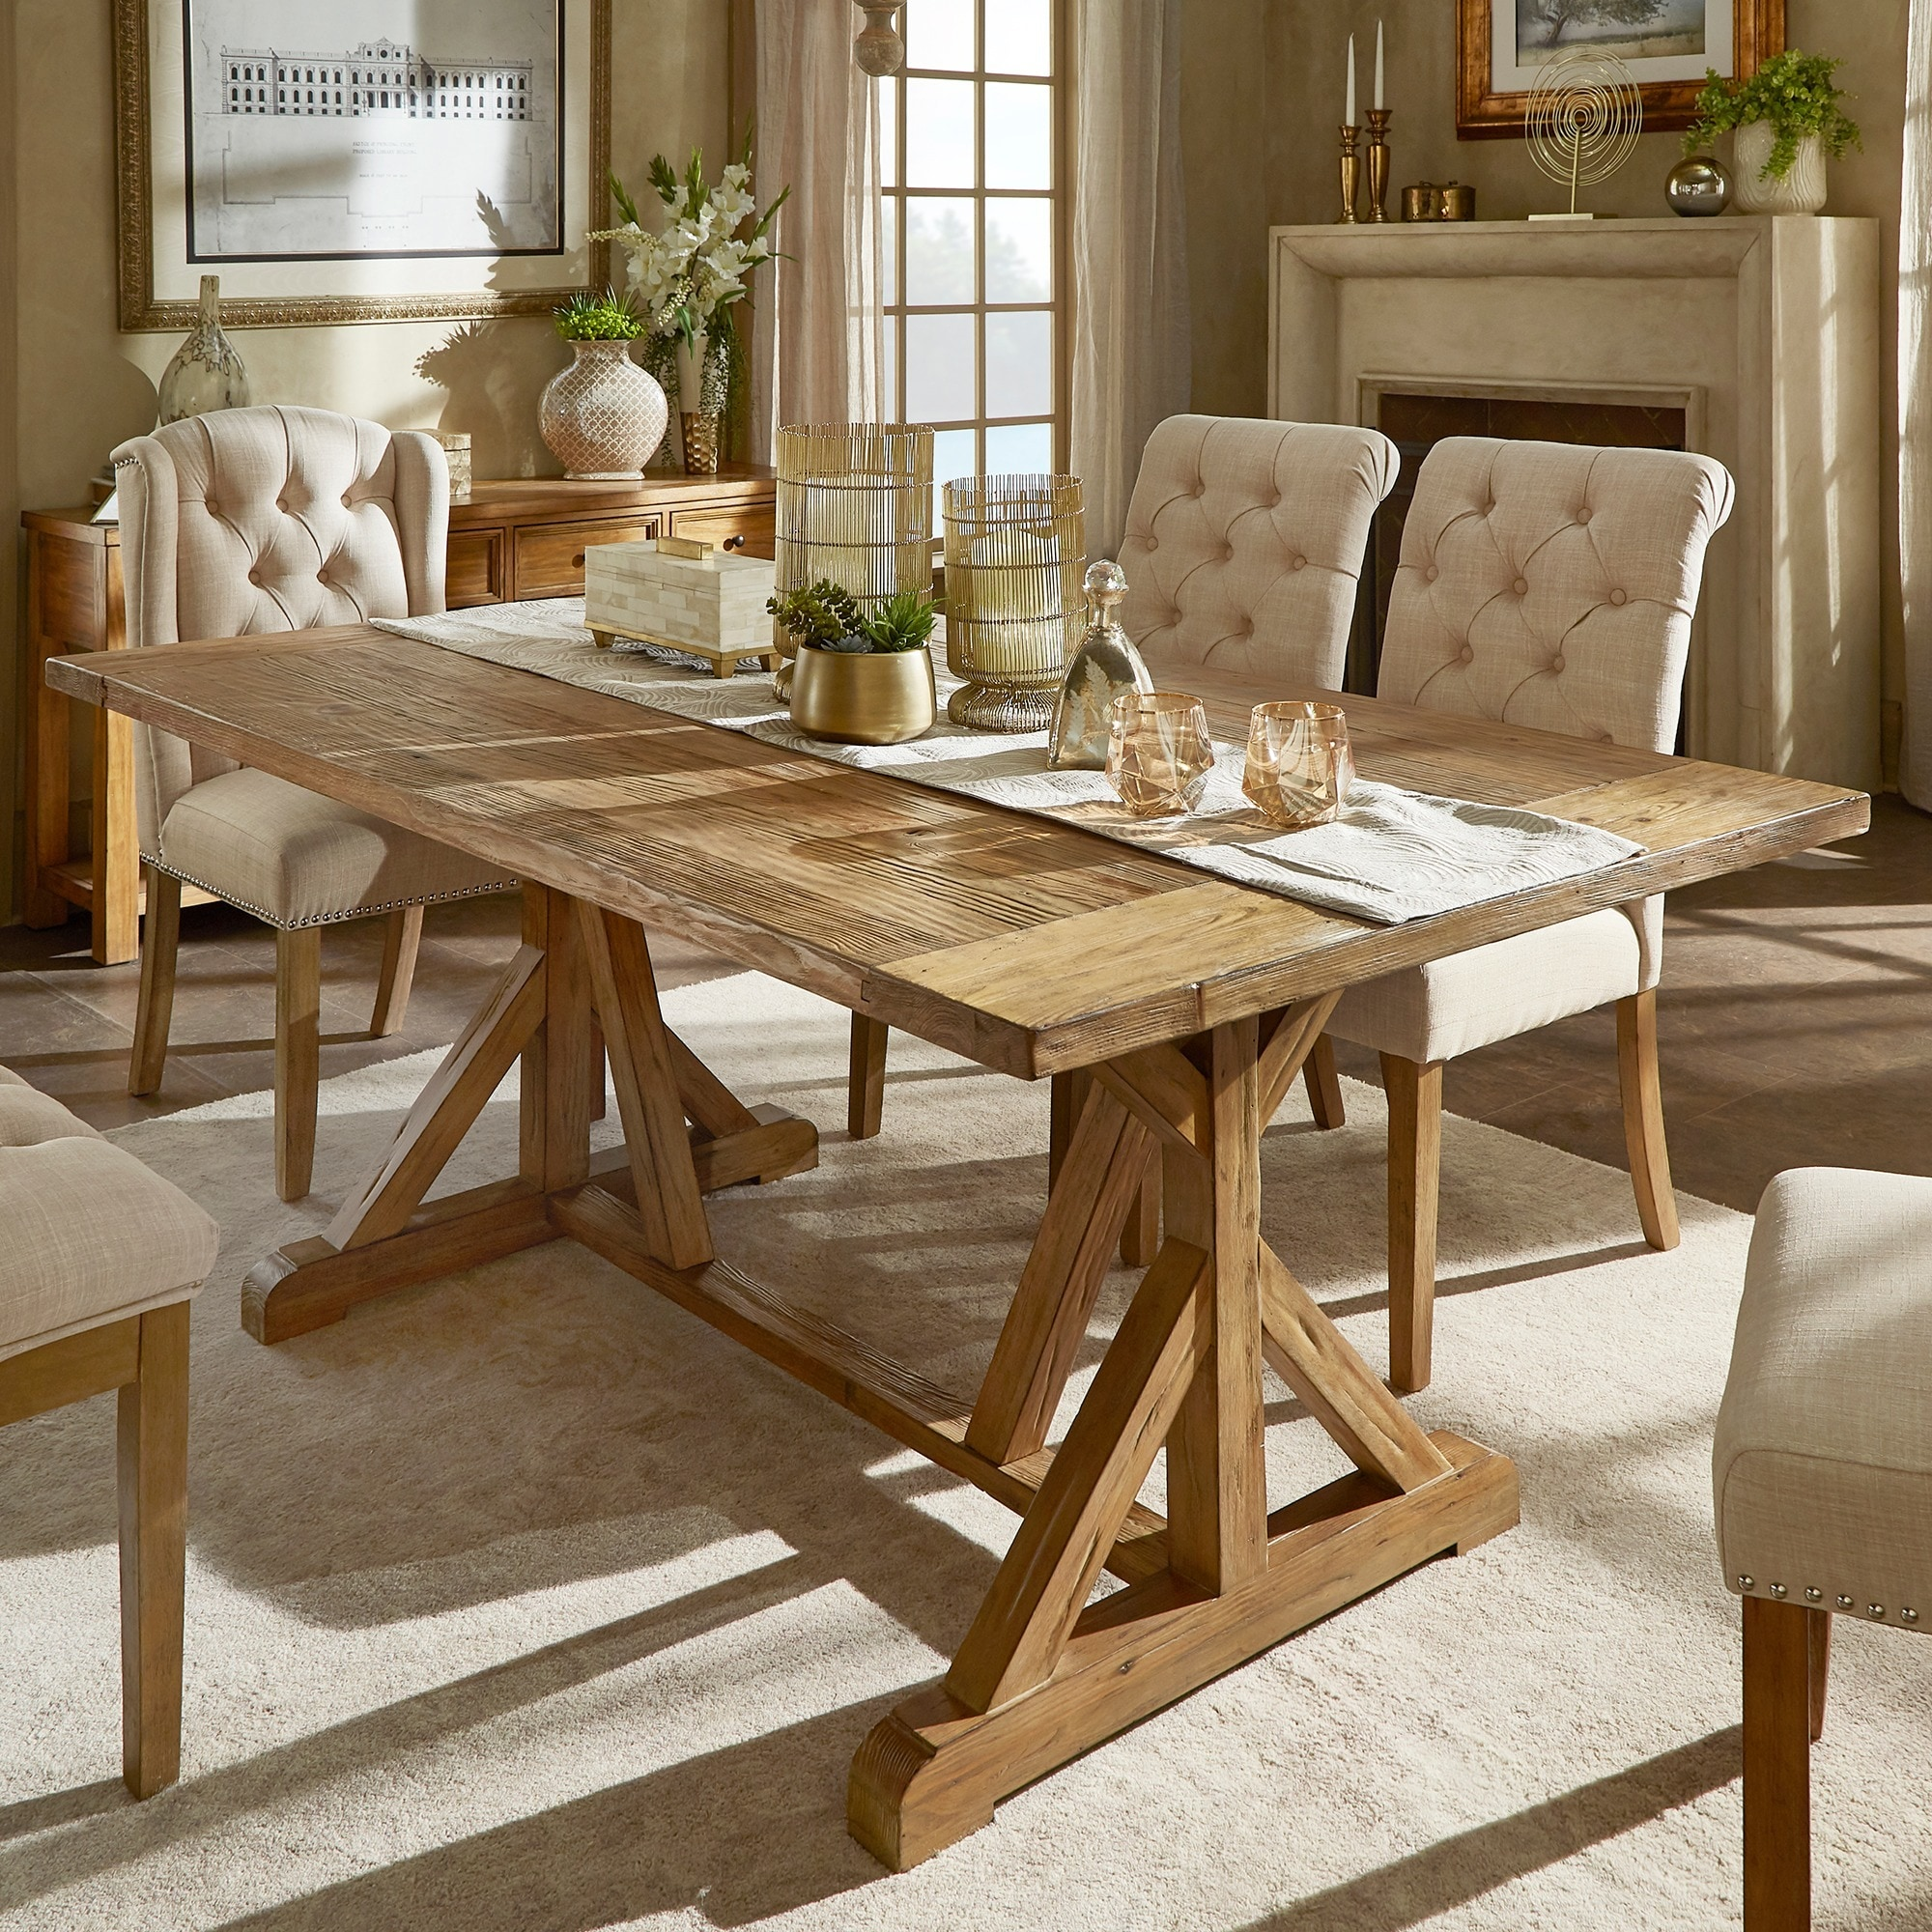 Benchwright Rustic Pine Accent Trestle Reinforced Dining Table by iNSPIRE Q  Artisan